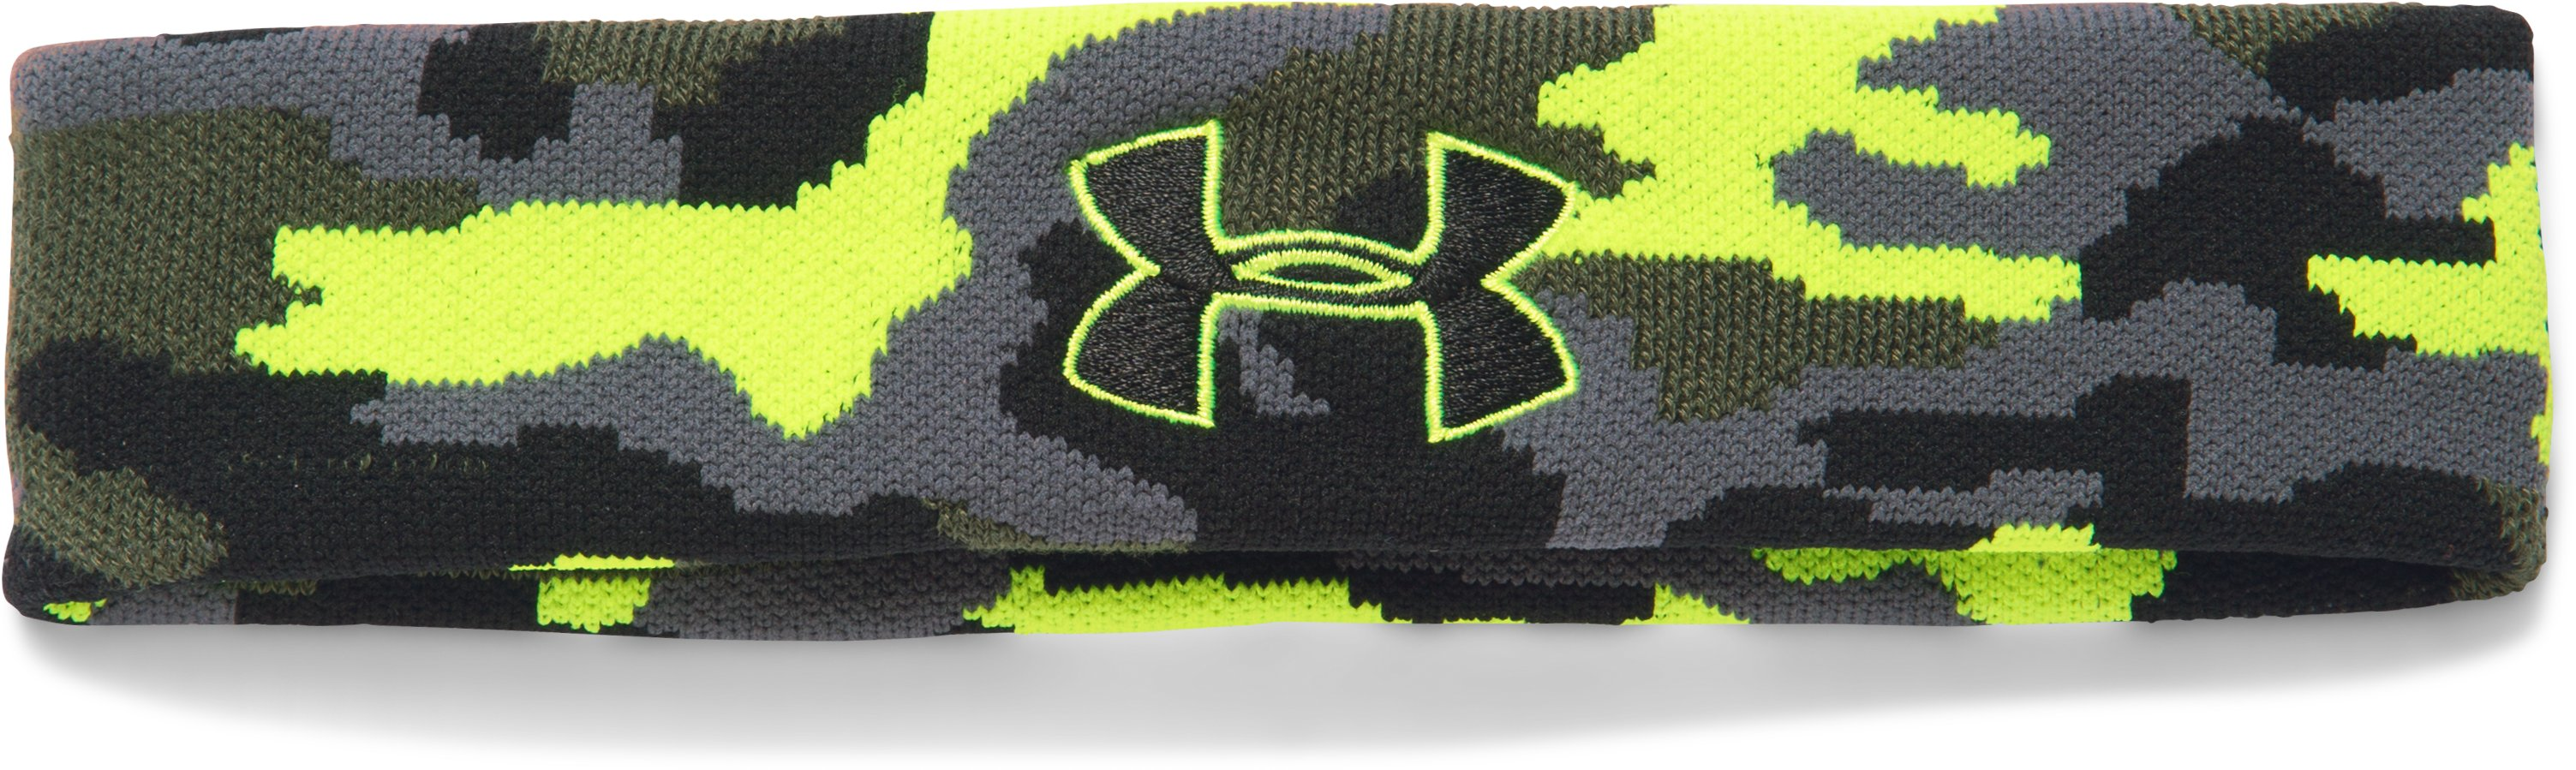 UA Jacquard Headband, Rough